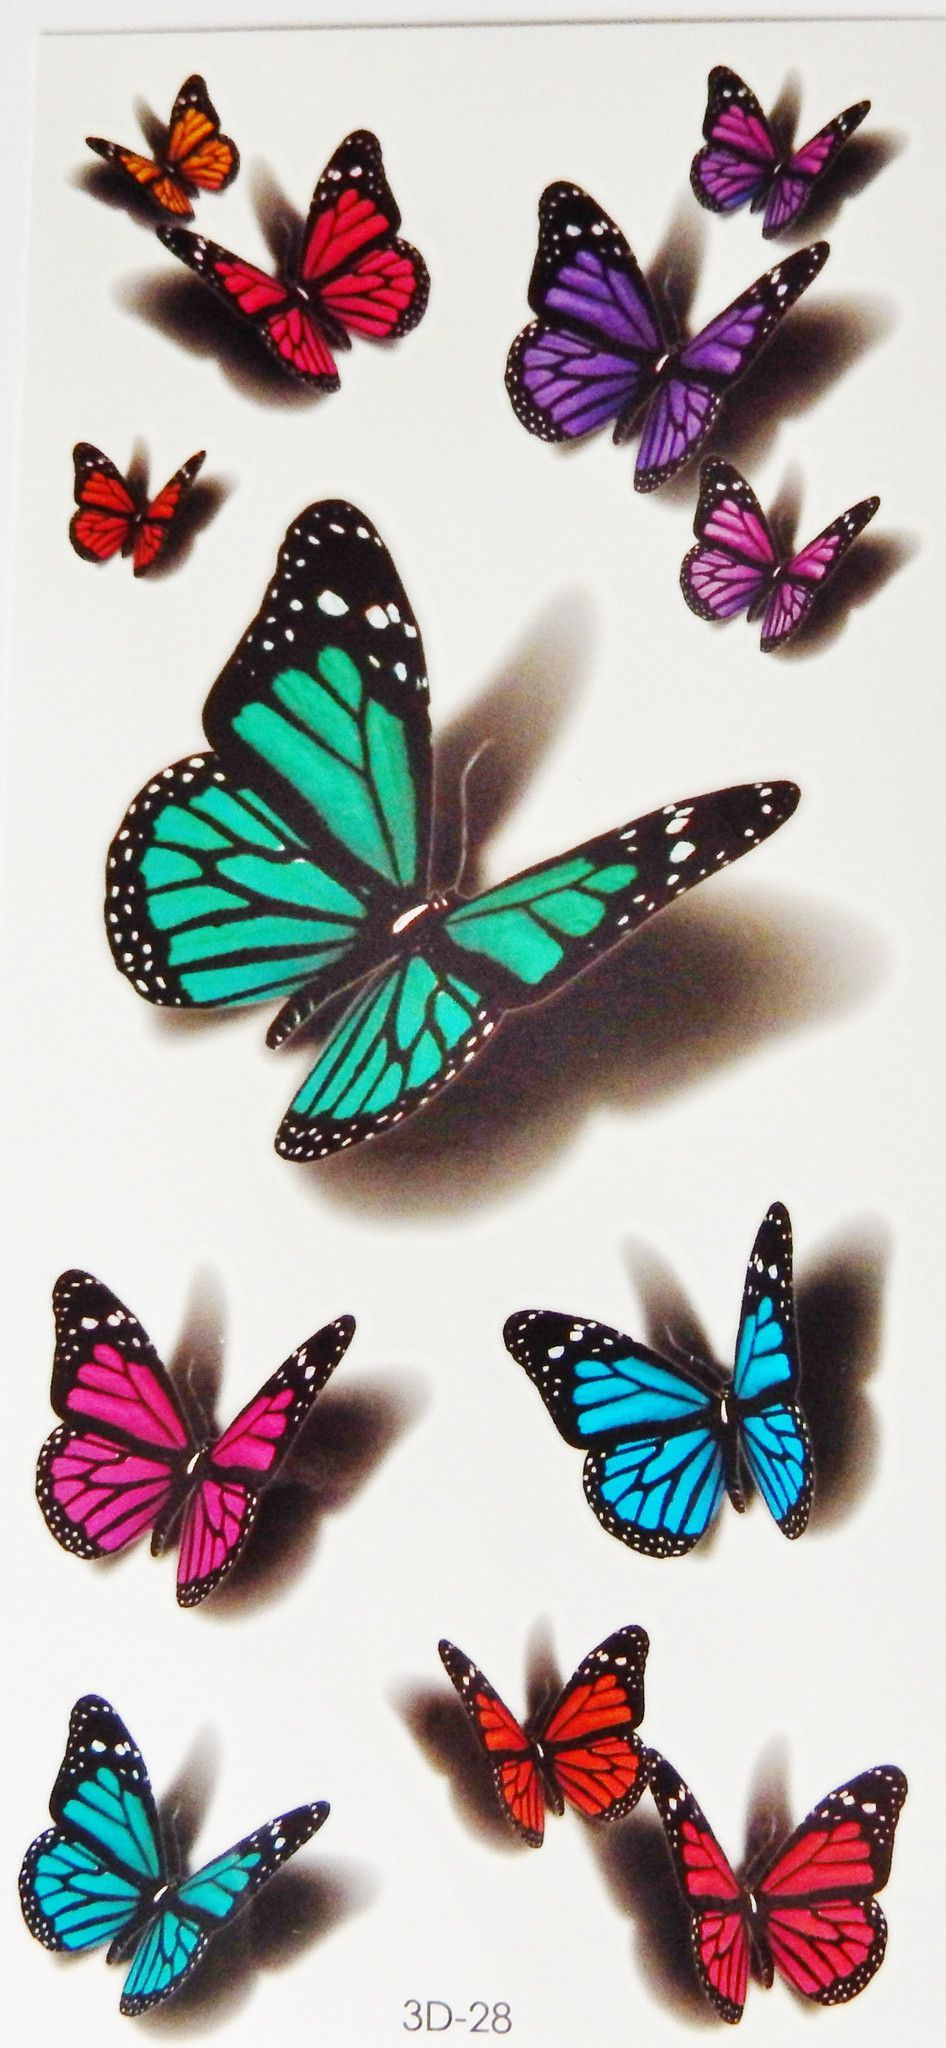 Colorful 3D Butterflies Scorpions Cats Temporary Tattoos Ideas And Designs